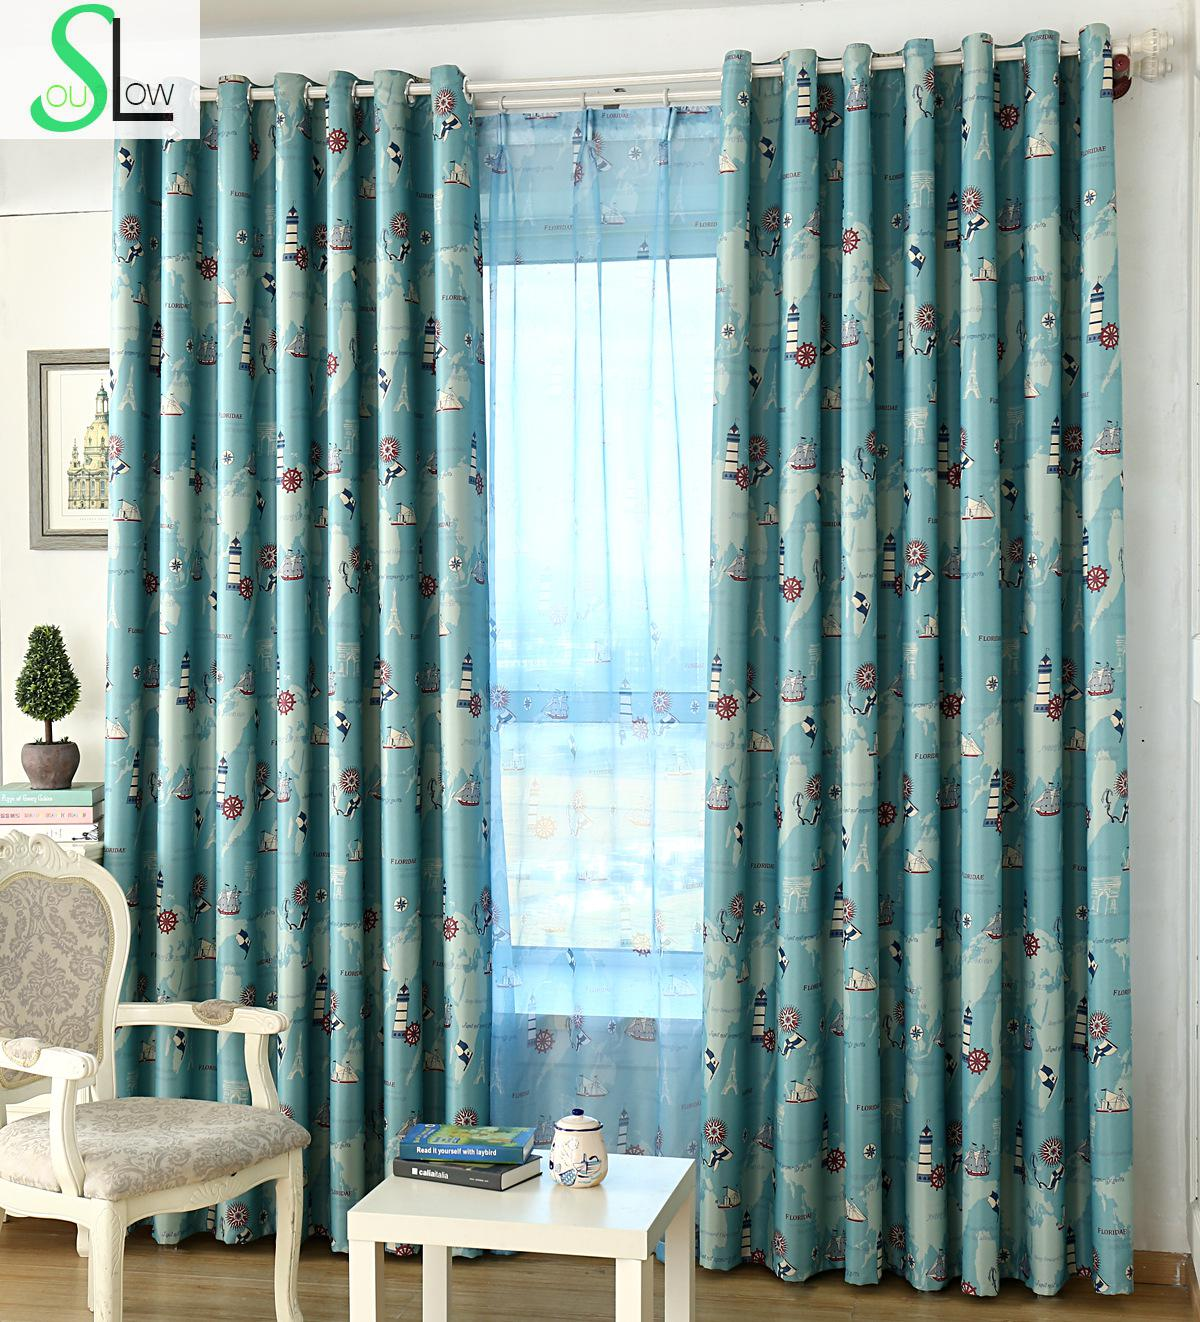 [Slow Soul] Mediterranean Style Navigation Era Shade Cloth Curtain Blackout  French Window Cartoon Curtains